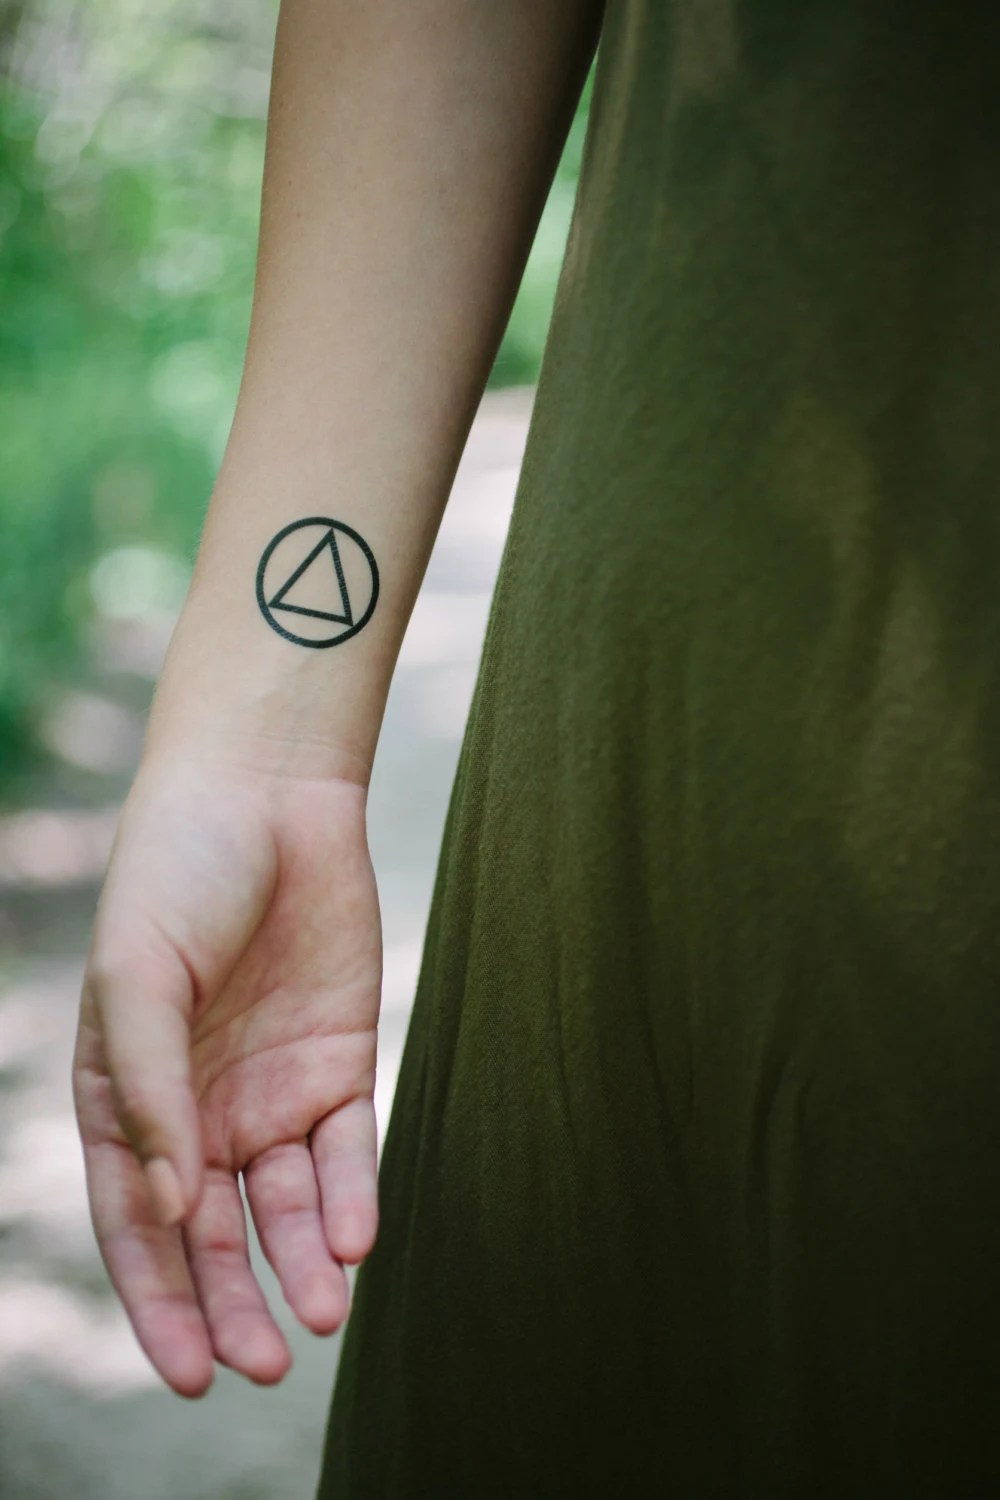 Alcoholics Anonymous Aa Symbol Temporary Tattoo Set Of 2 Ideas And Designs